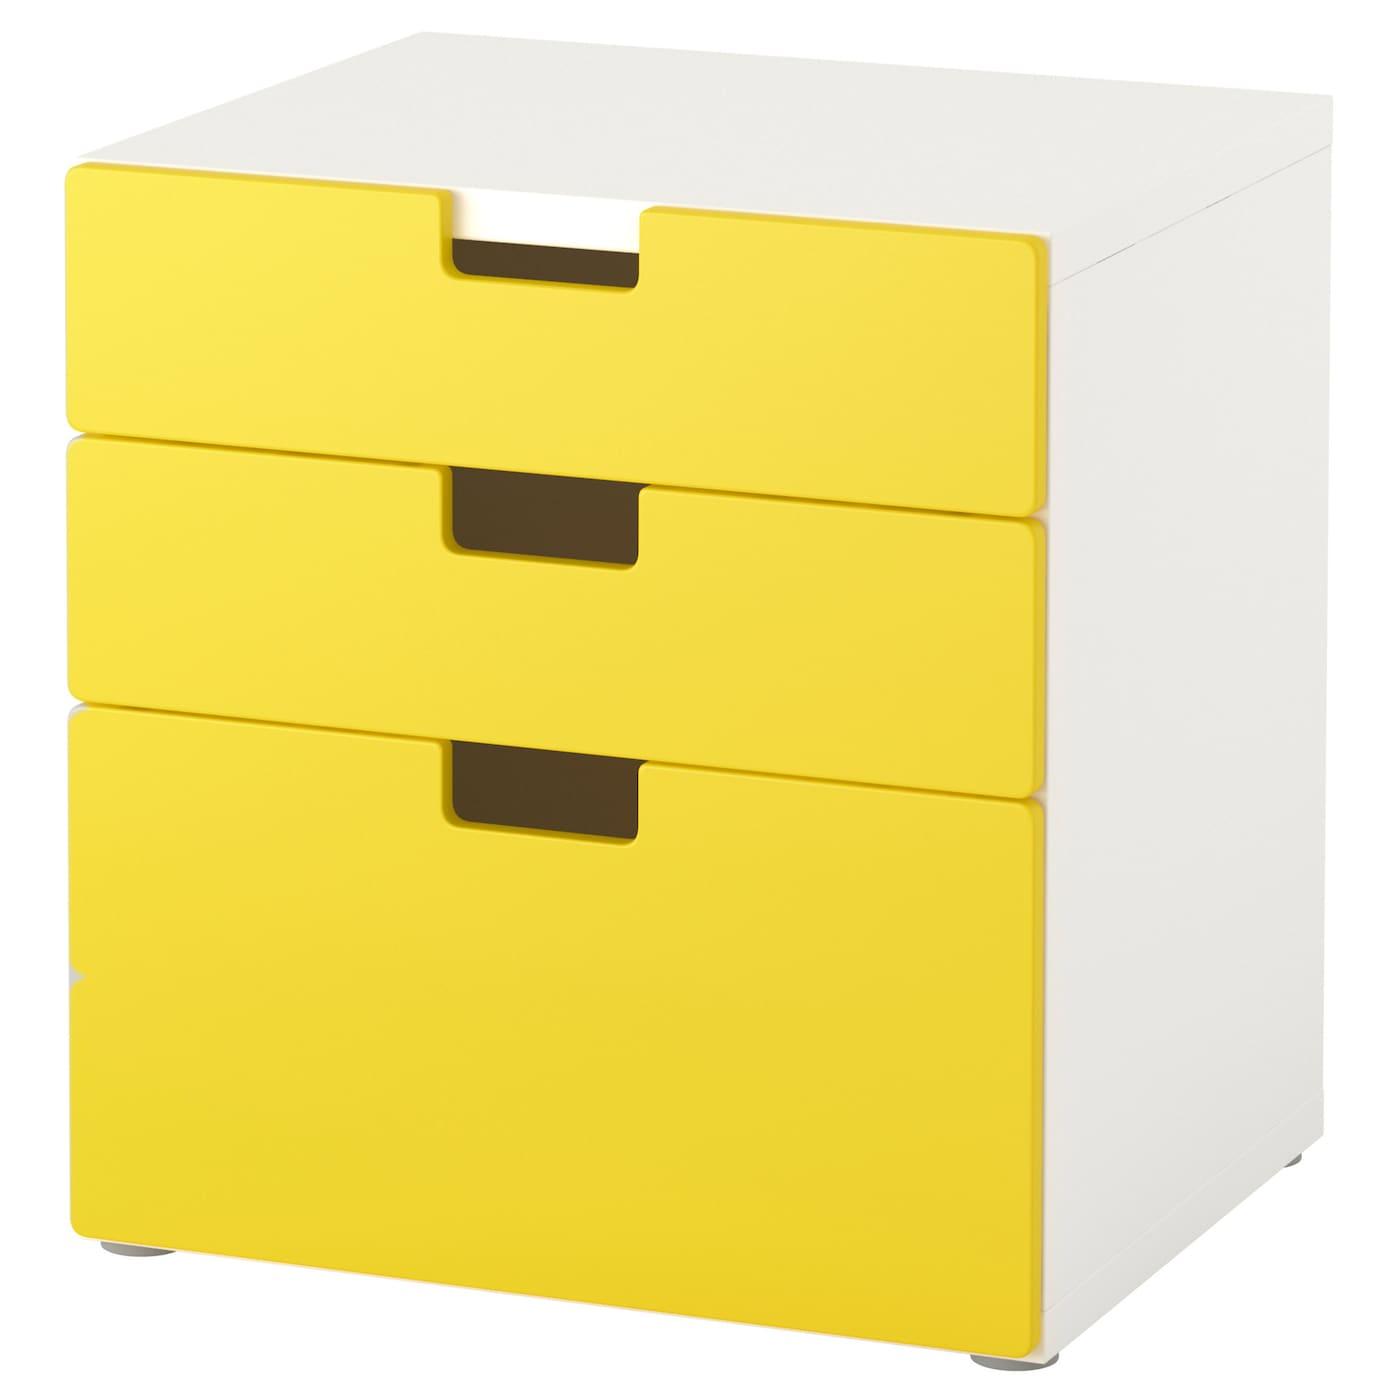 Stuva Chest Of 3 Drawers Yellow 60x64 Cm Ikea